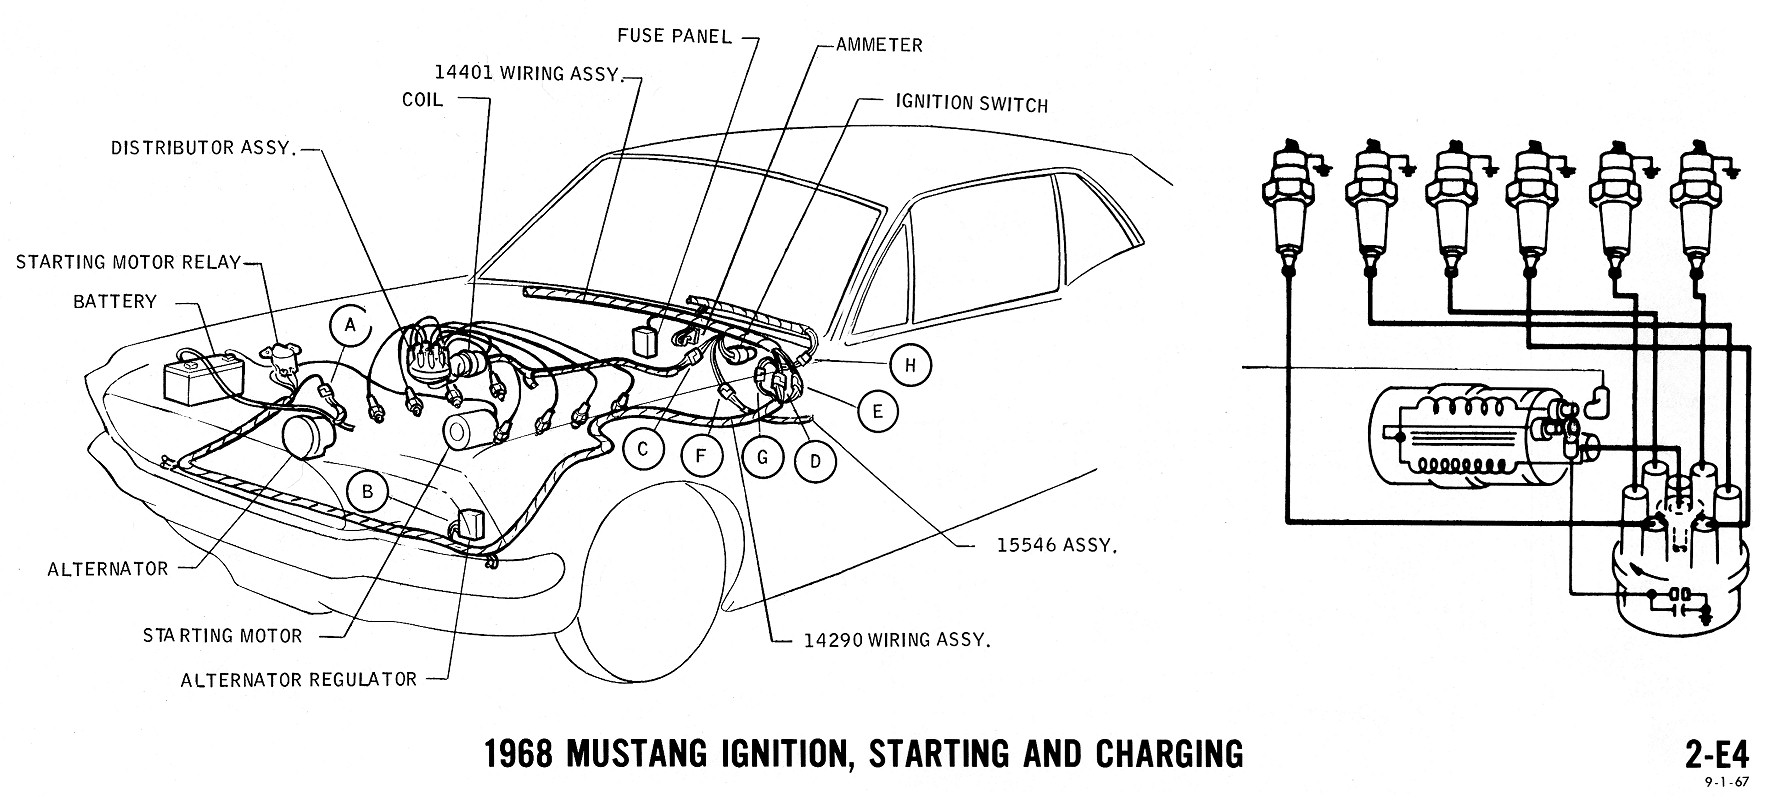 Mustang Wiring Diagram Ignition Starting Charging on 1964 mustang alternator wiring diagrams